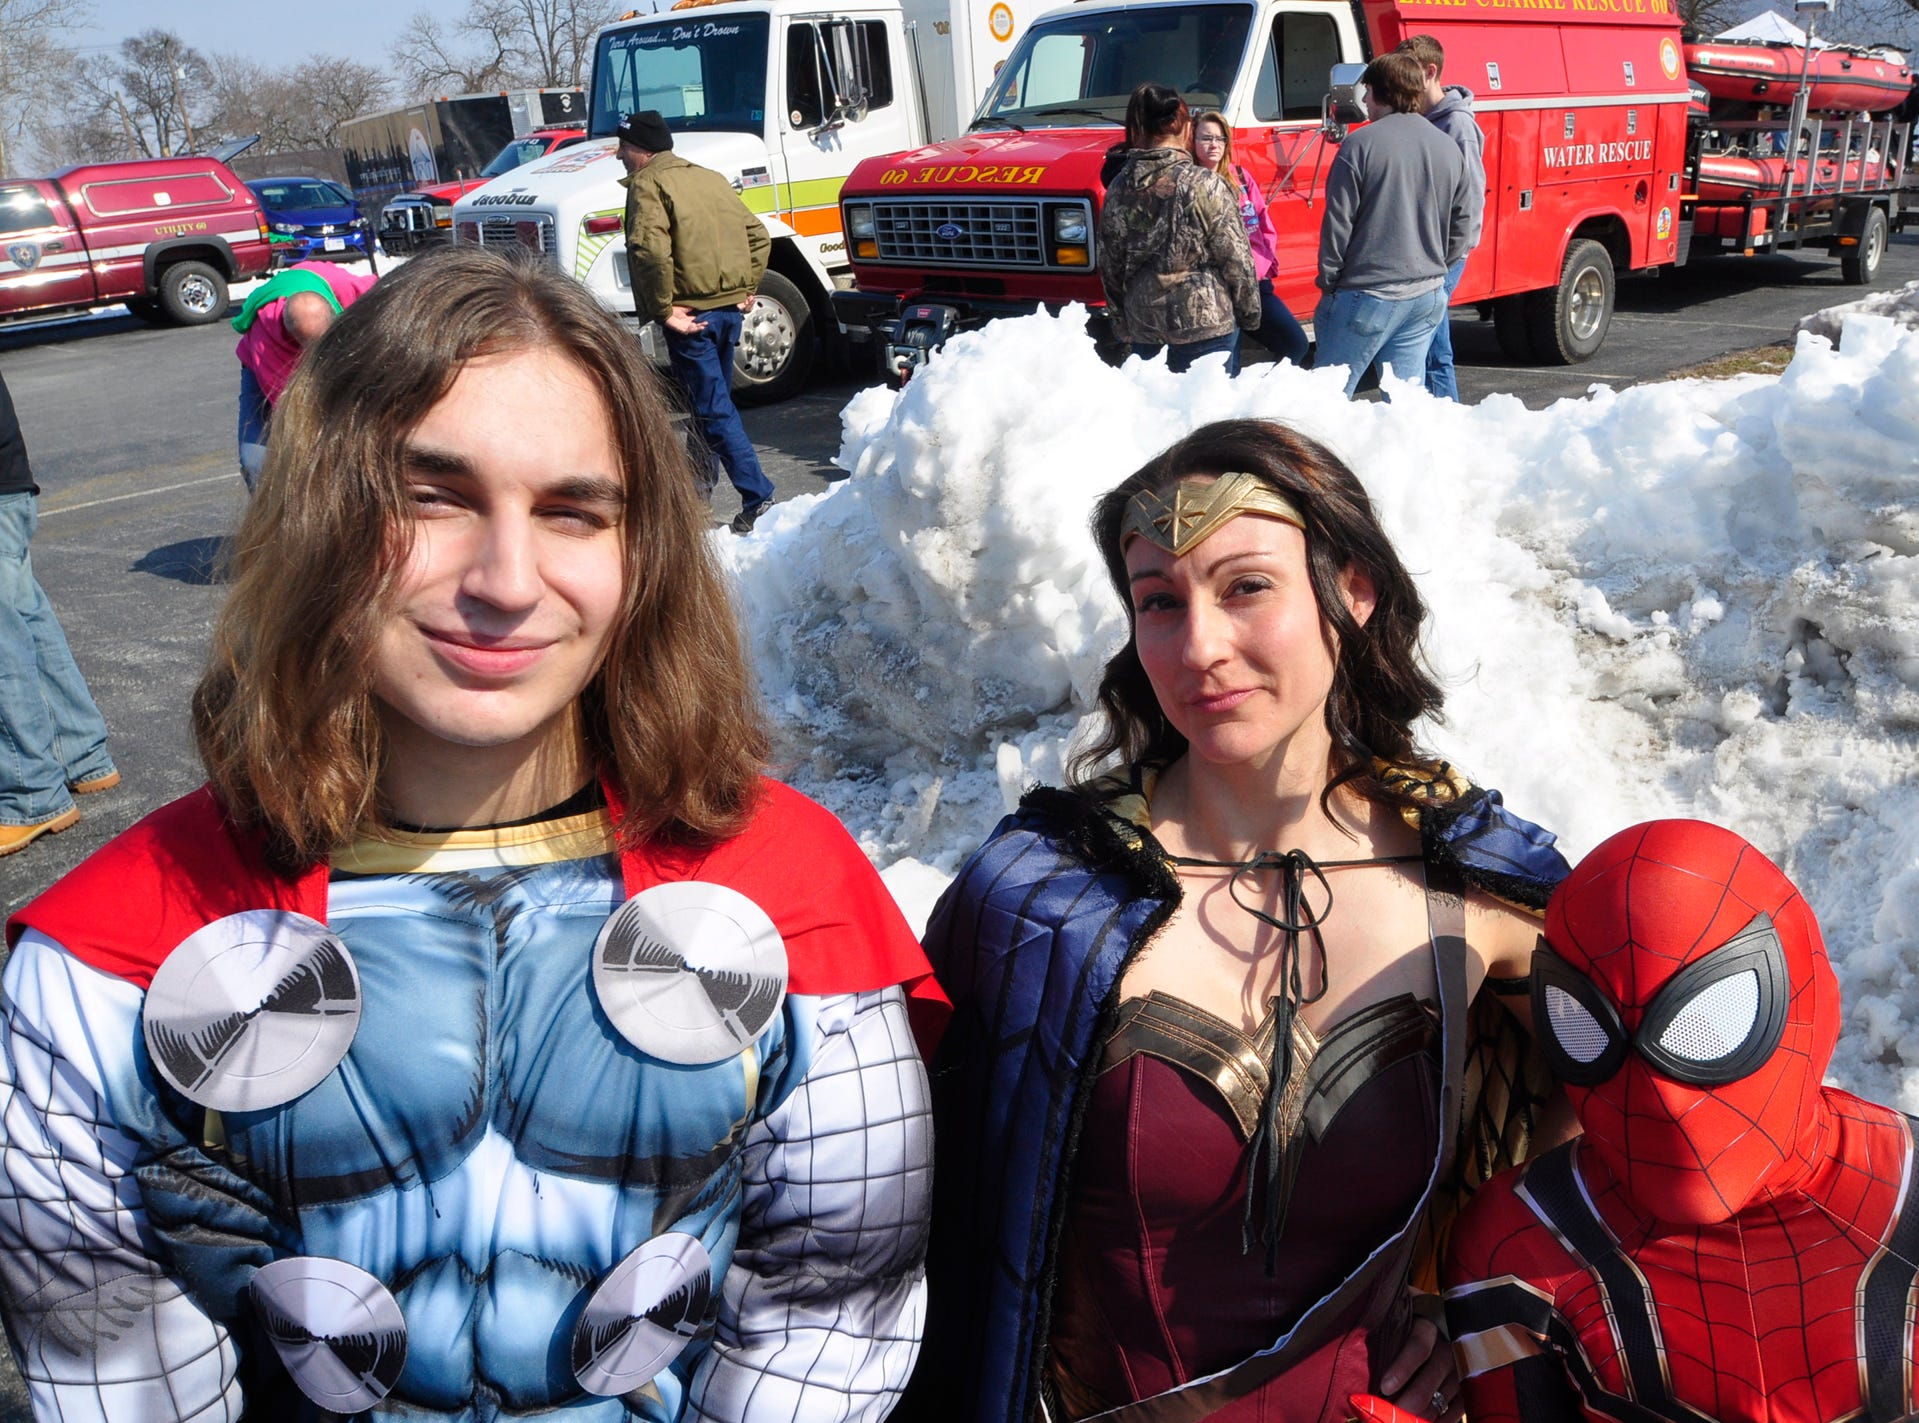 Michael Allen is Thor, Alena Bopwers is Wonder Woman and Sammy Bowers is Spider Man. All from Mount Wolf.